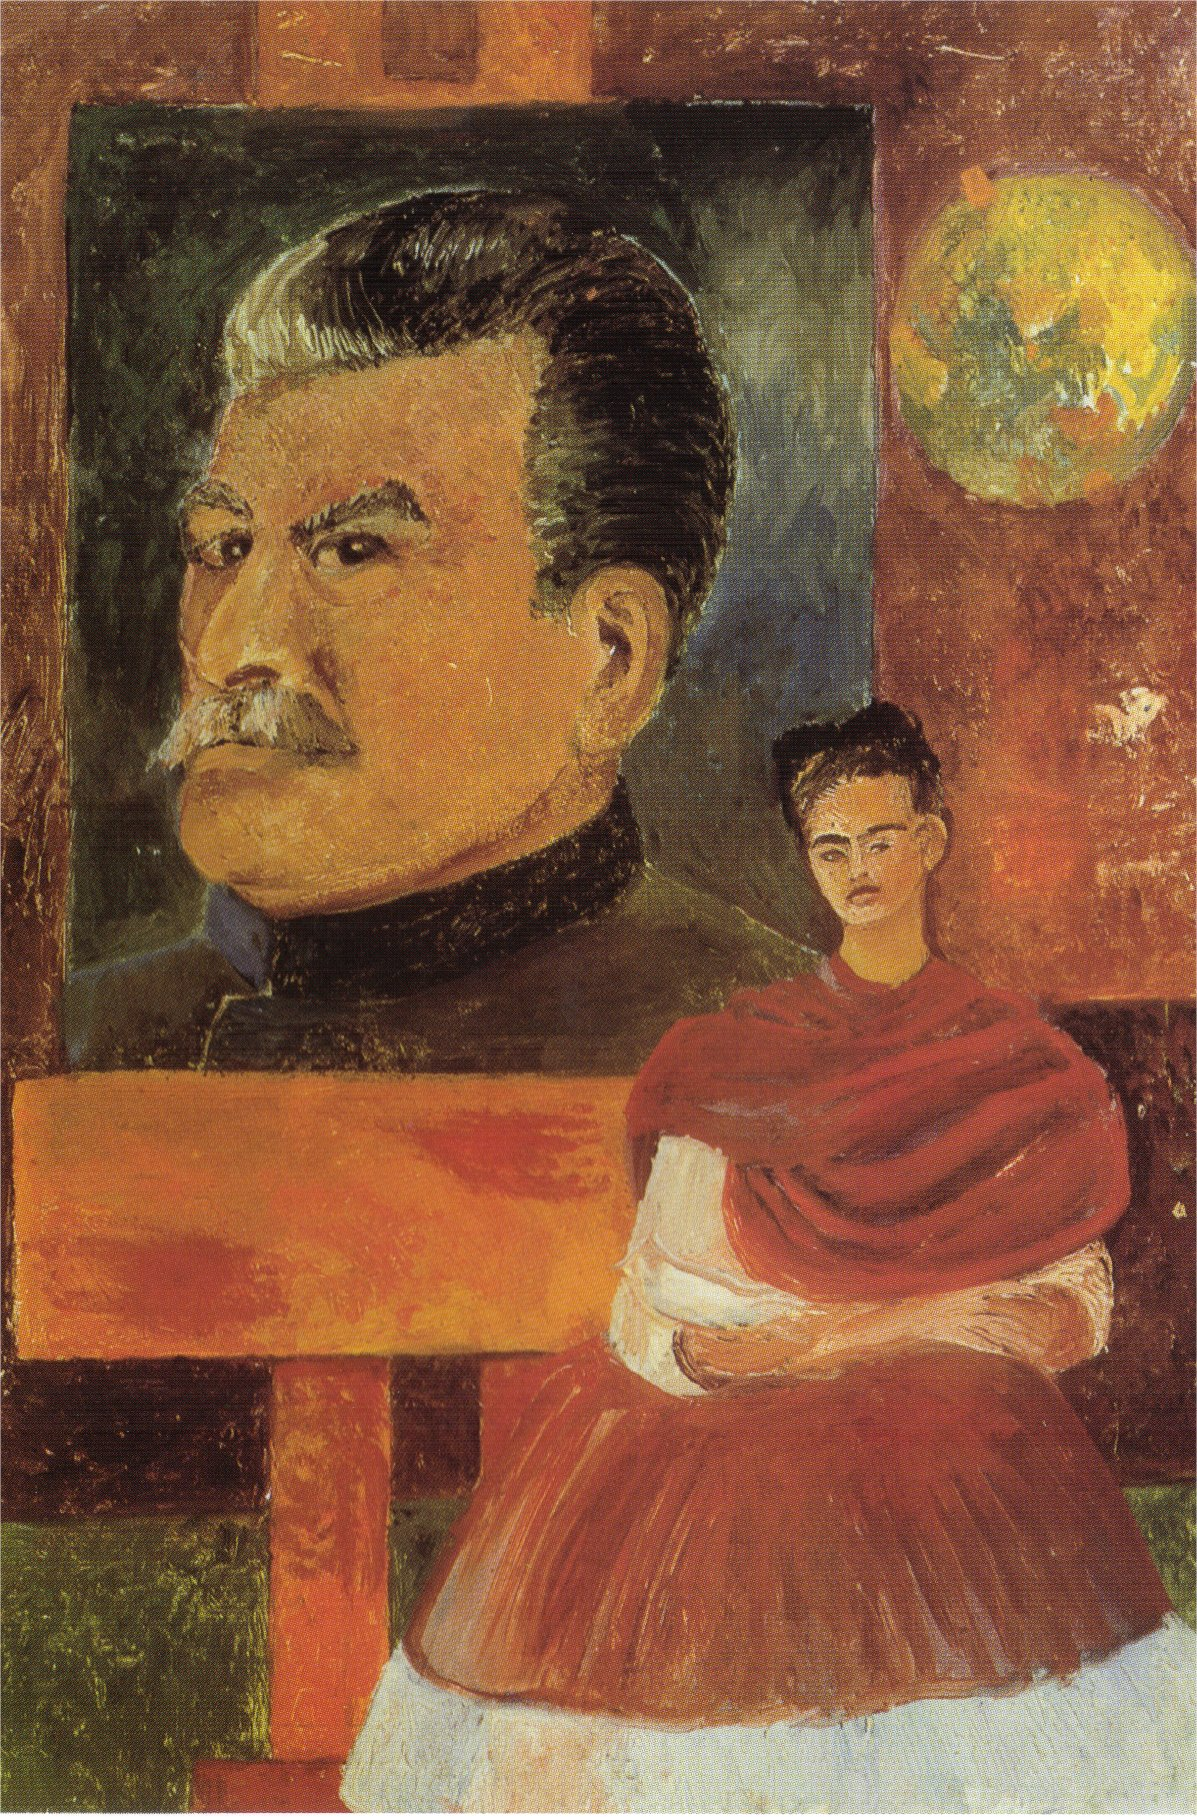 on frida kahlo s birthday check out her self portrait frida kahlo wikiart